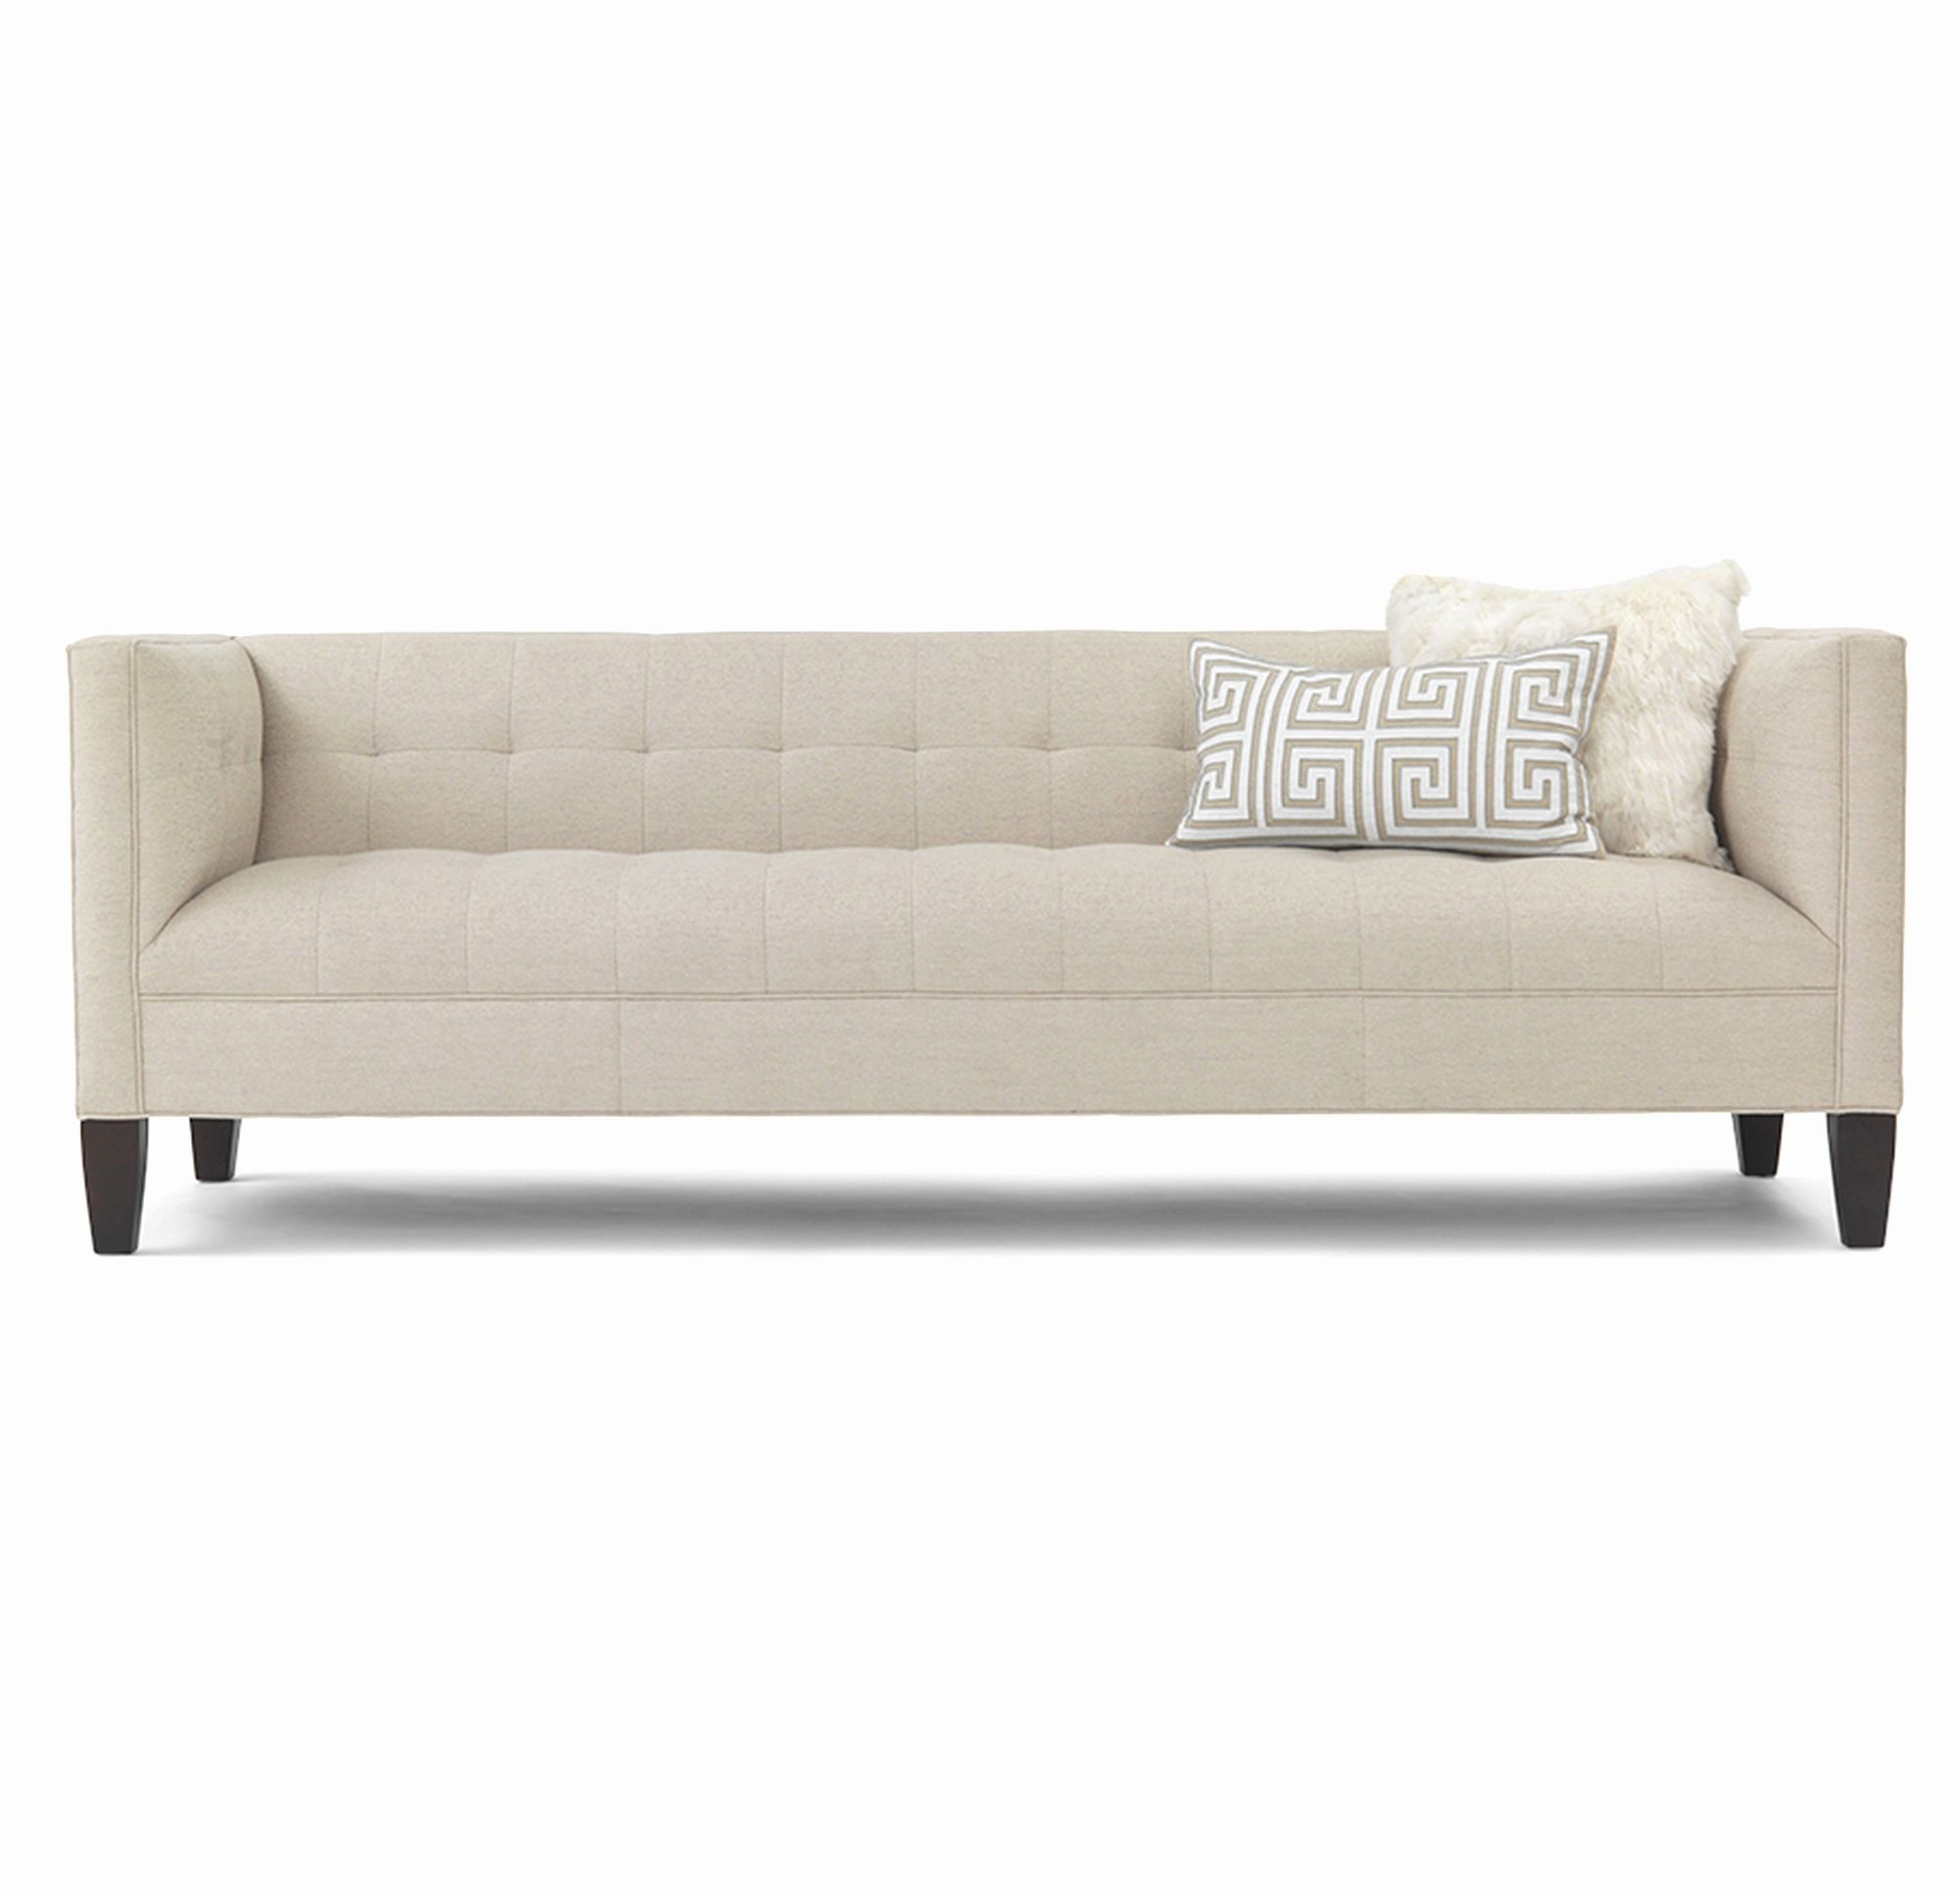 Elegant Mitchell Gold Sleeper Sofa Reviews Picture Mitchell Gold Sleeper Sofa  Reviews Lovely Mitchell Gold Sleeper